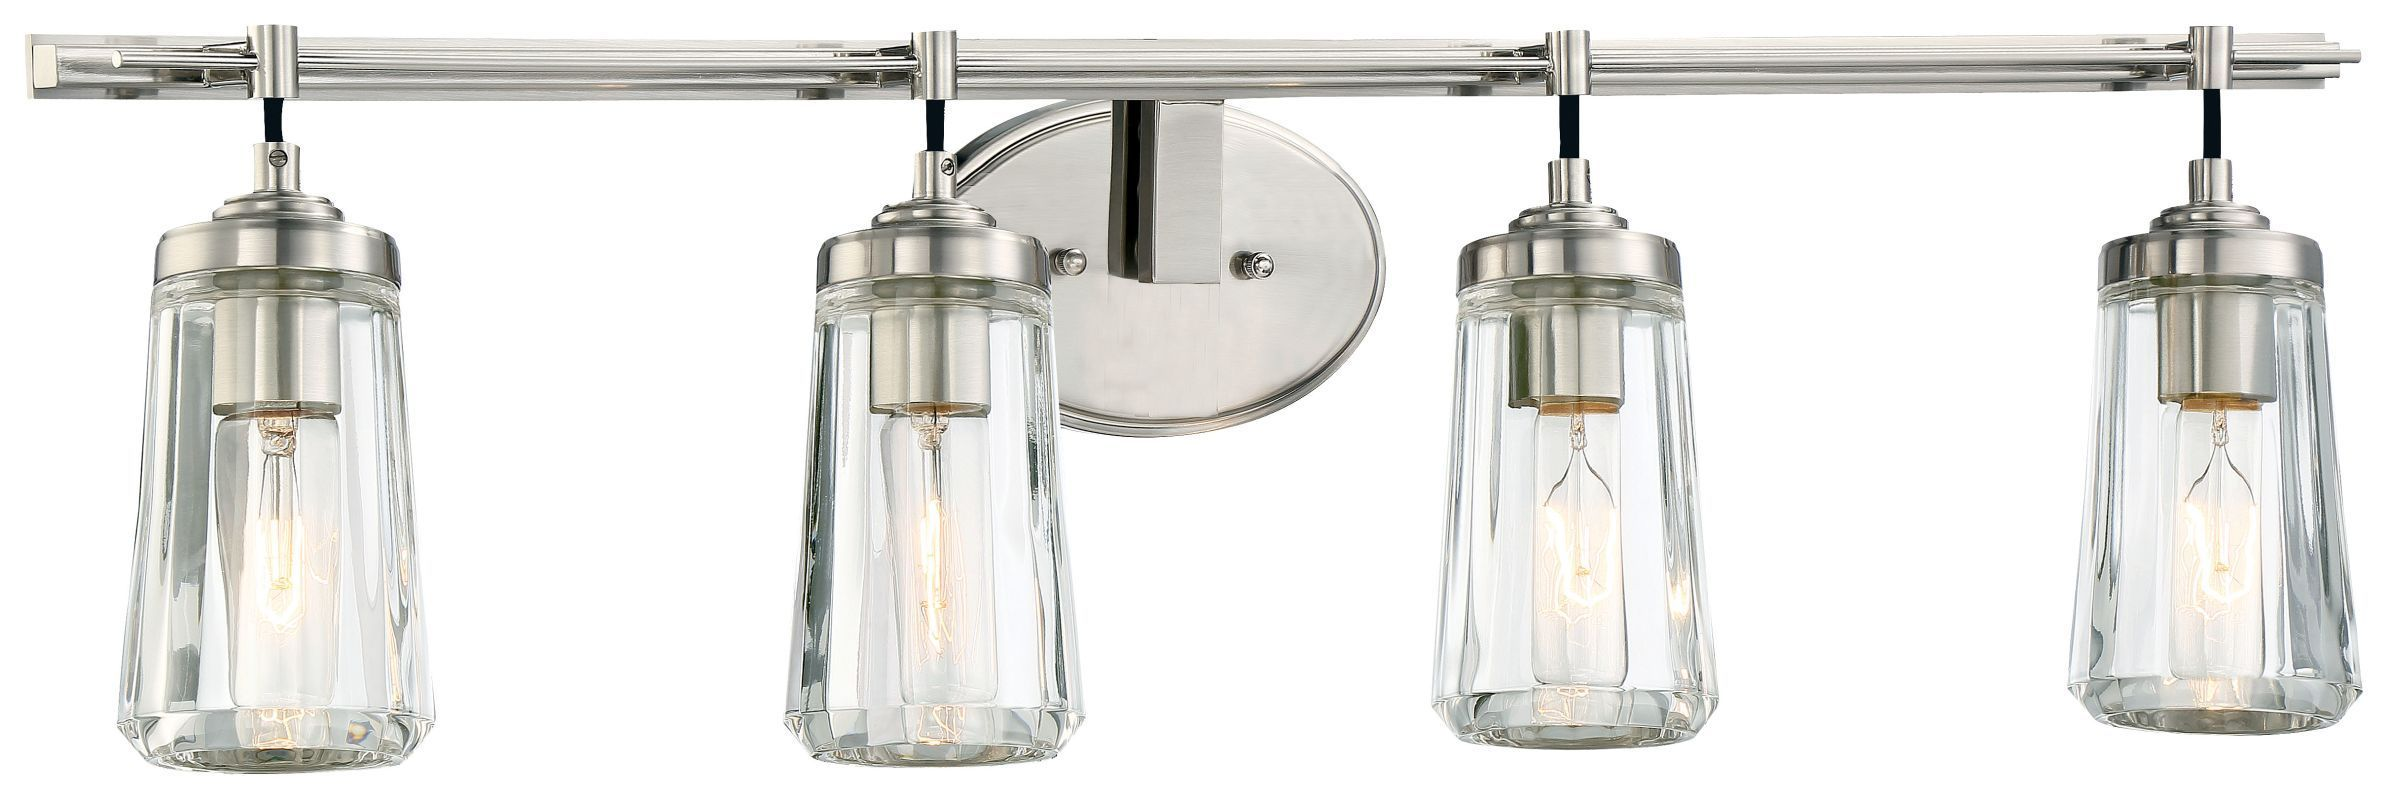 View The Minka Lavery 2304 84 4 Light Vanity From Poleis Collection At